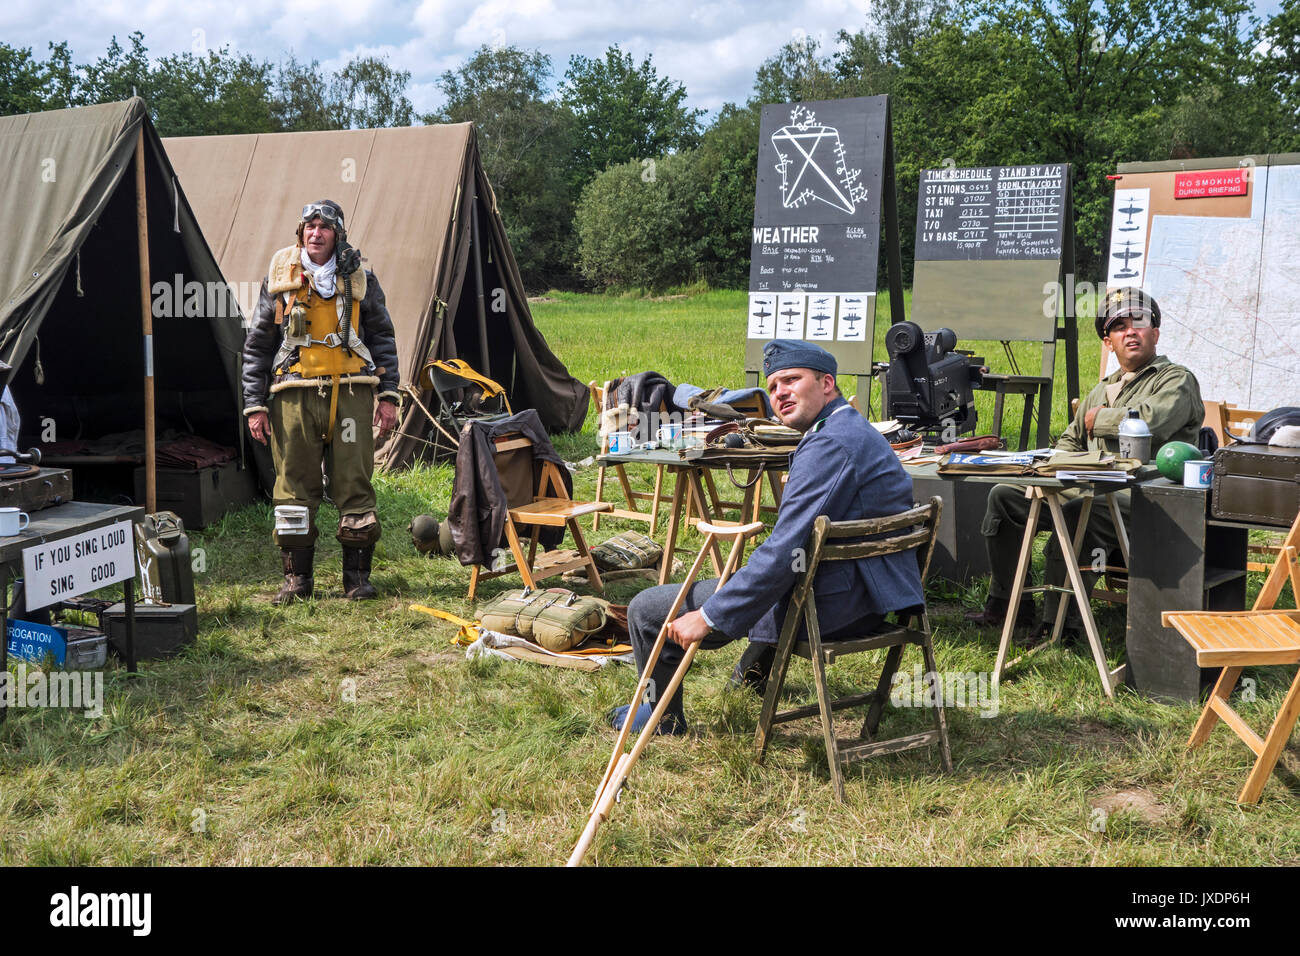 Re-enactors in World War Two battle dresses posing in military re-enactment field camp at WW2 militaria fair Stock Photo